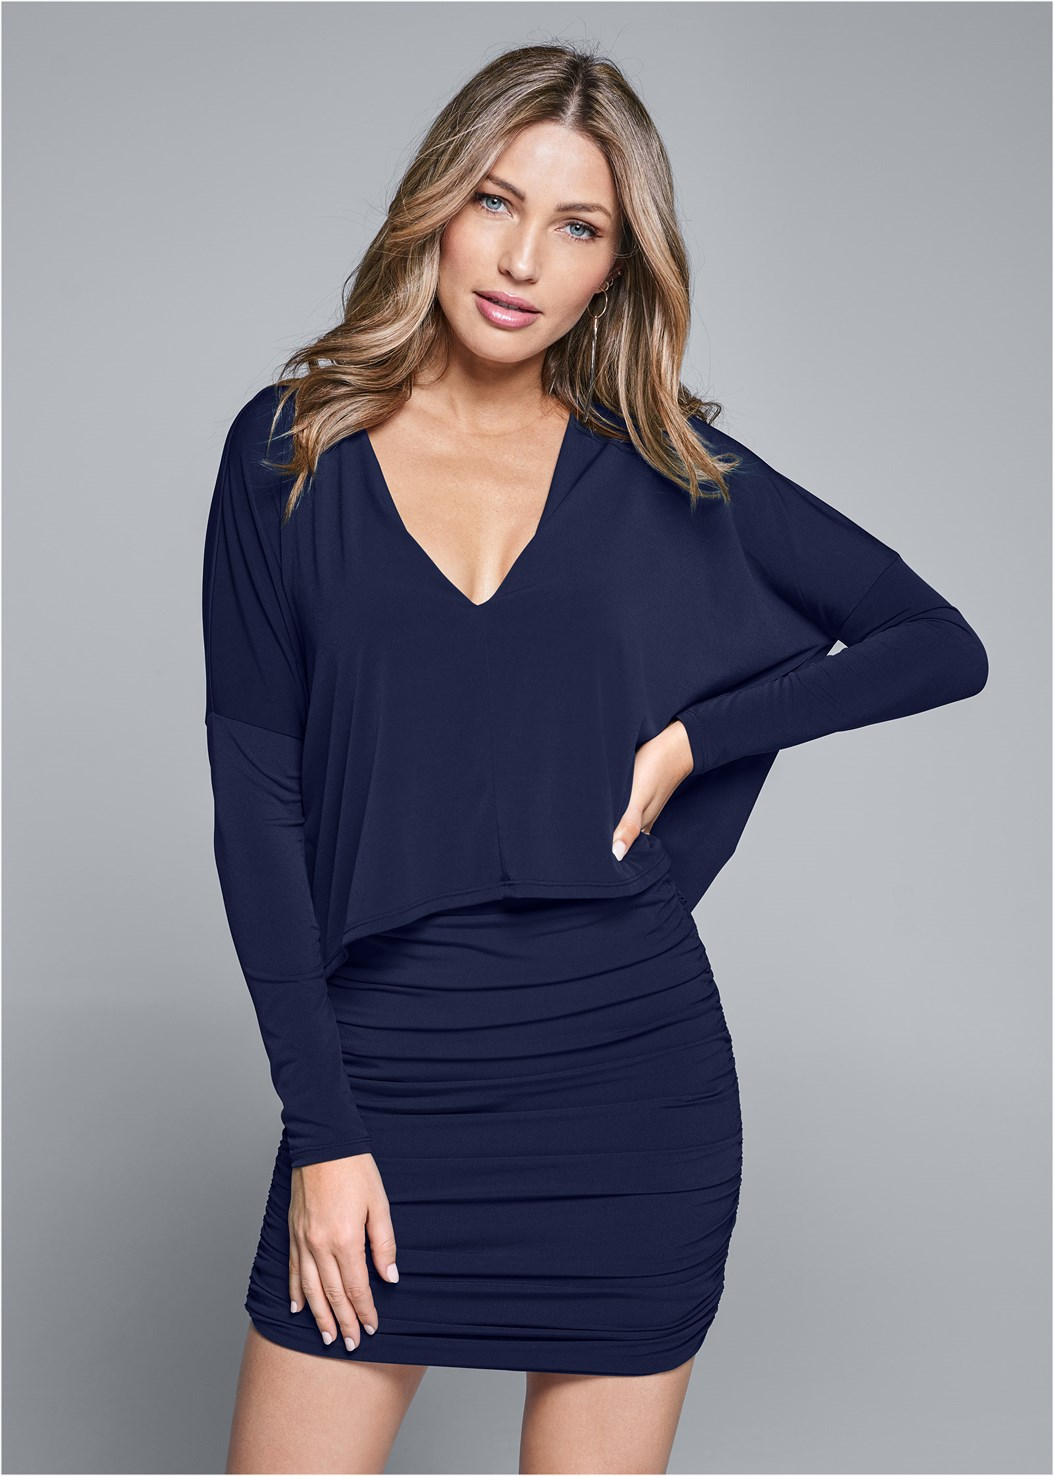 Overlay Detail Casual Dress,Seamless Lace Comfort Bra,Slouchy Mid-Calf Boot